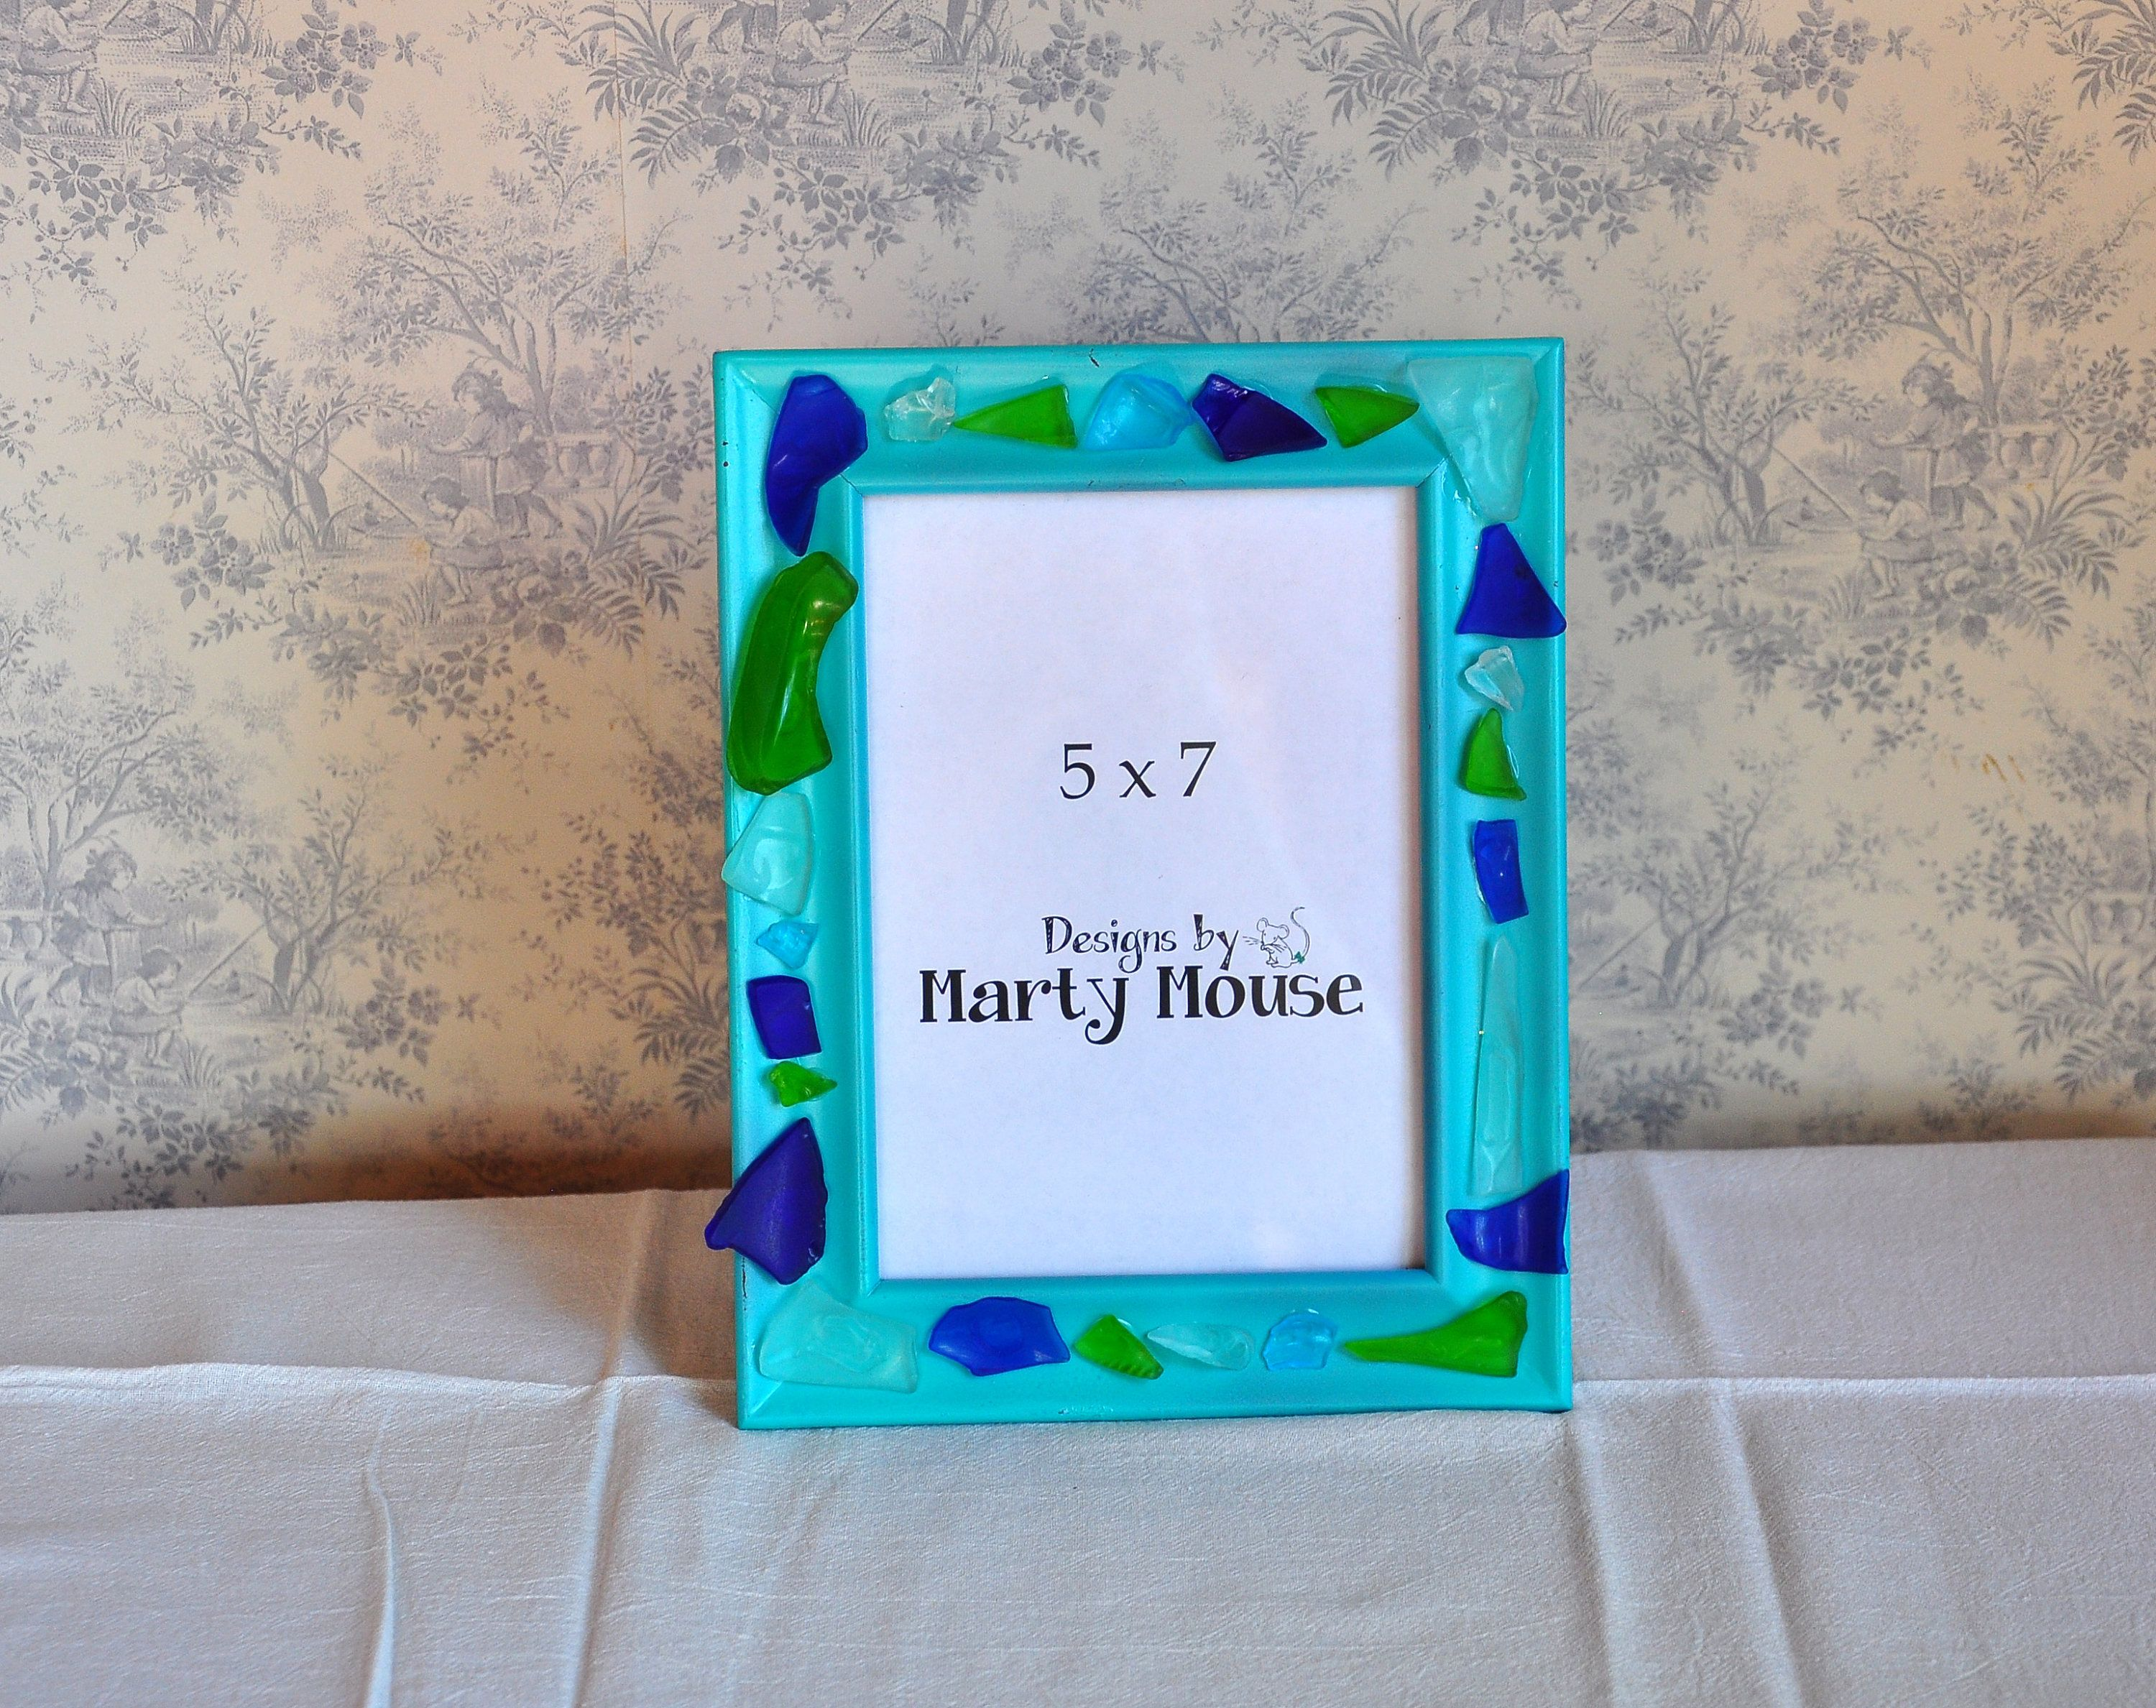 Beach Picture Framepicture Frame5x75x7 Frametumbled Glass Frame